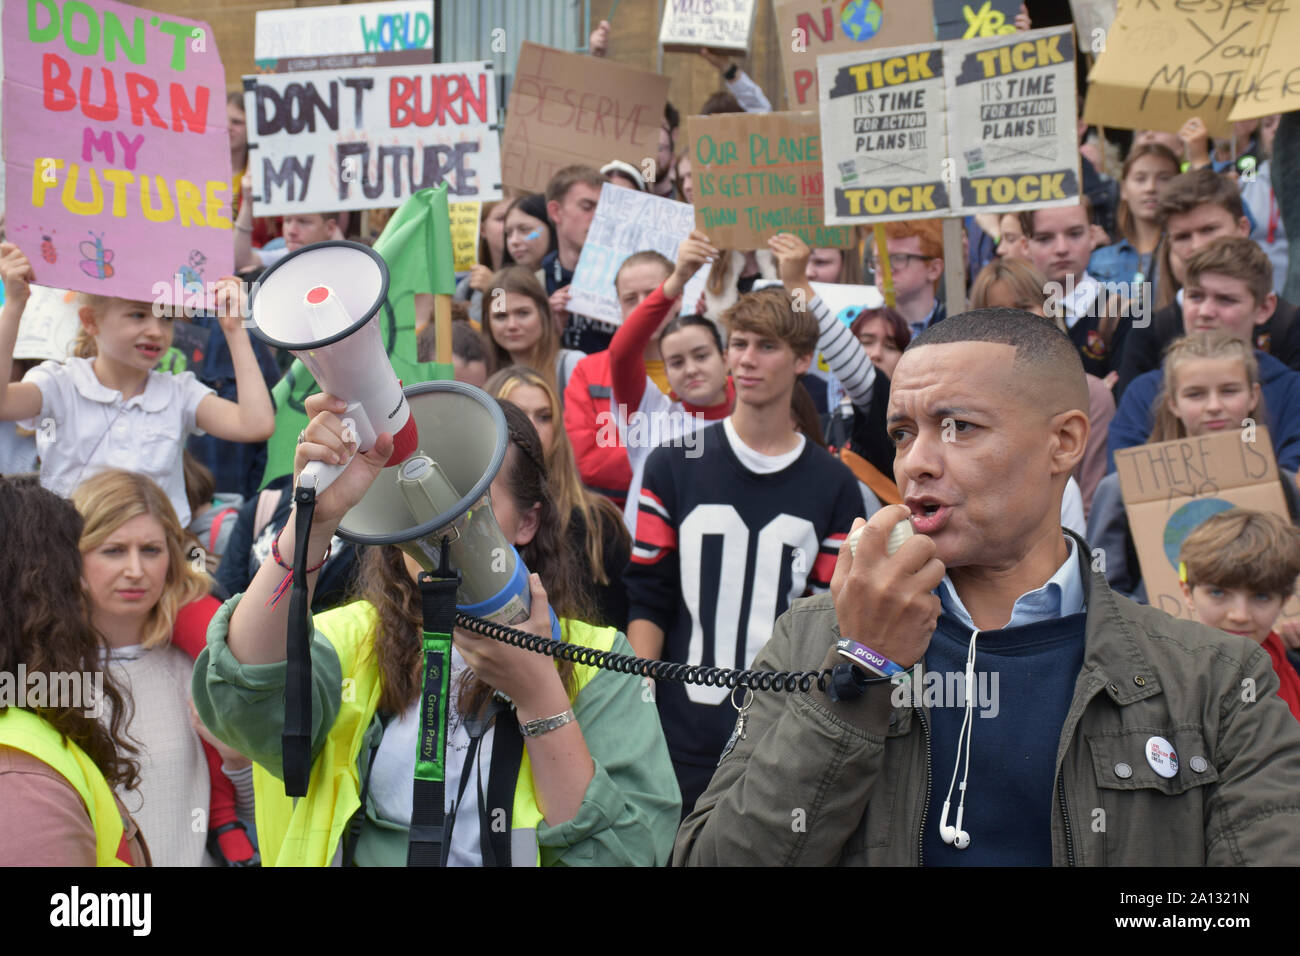 School Strike for Climate, Norwich, UK, Friday 20 September 2019 - Norwich South Labour MP Clive Lewis speaking Stock Photo